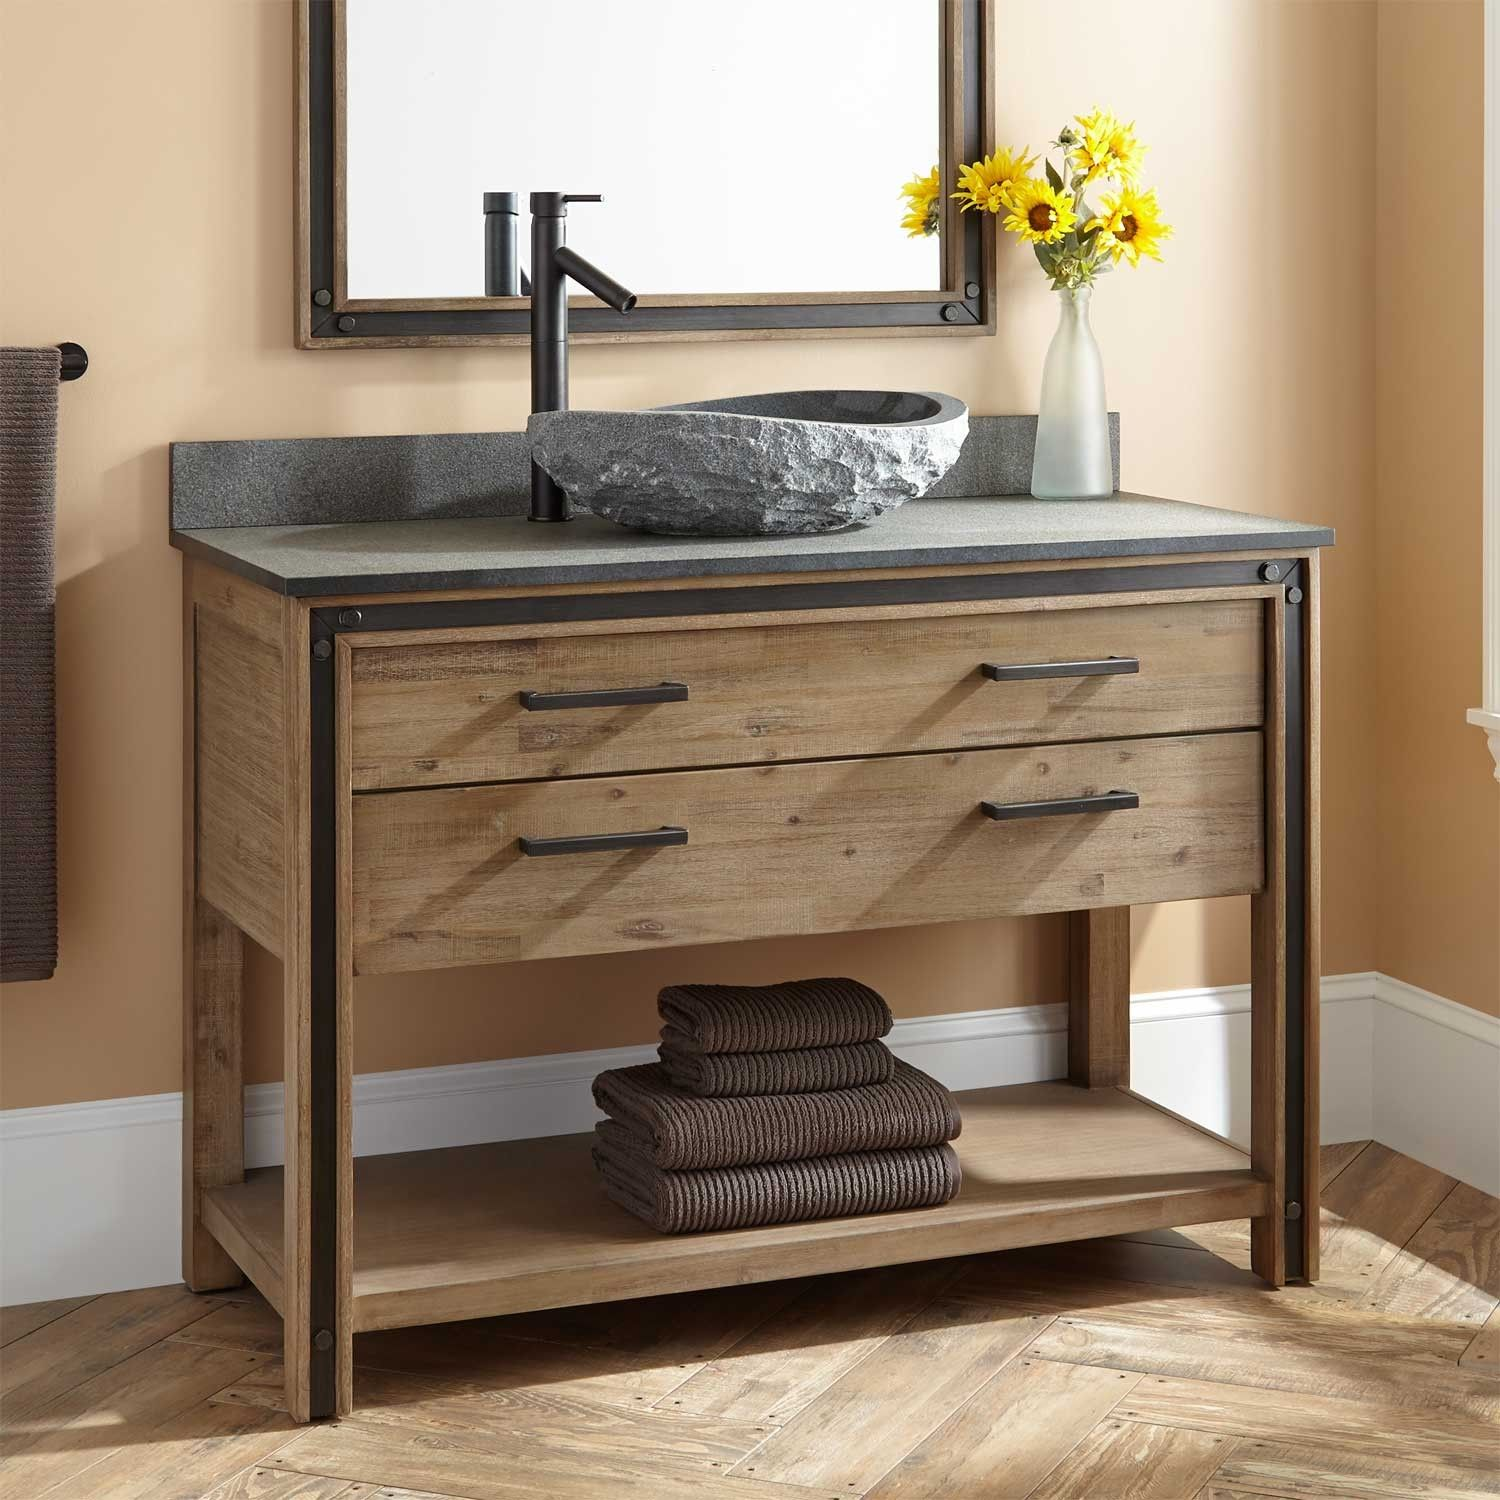 48 celebration vessel sink vanity rustic acacia